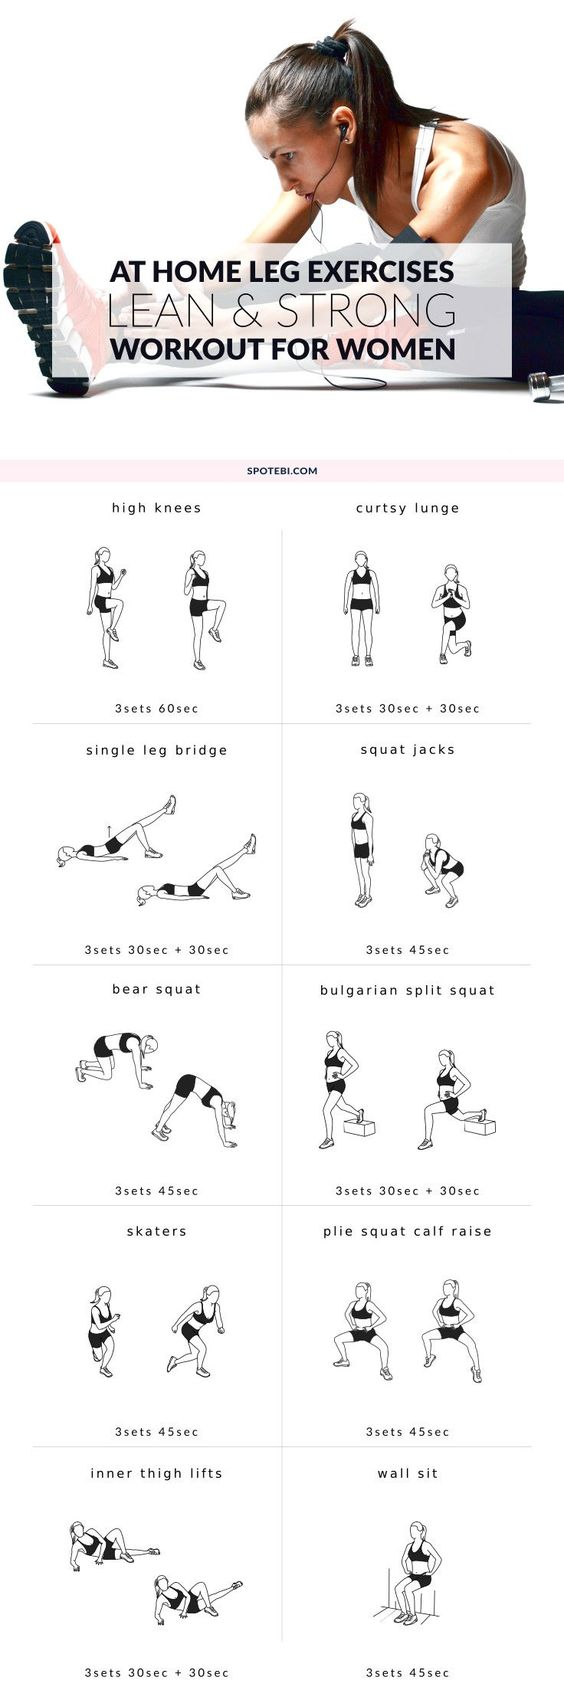 At Home Leg Exercises For Women